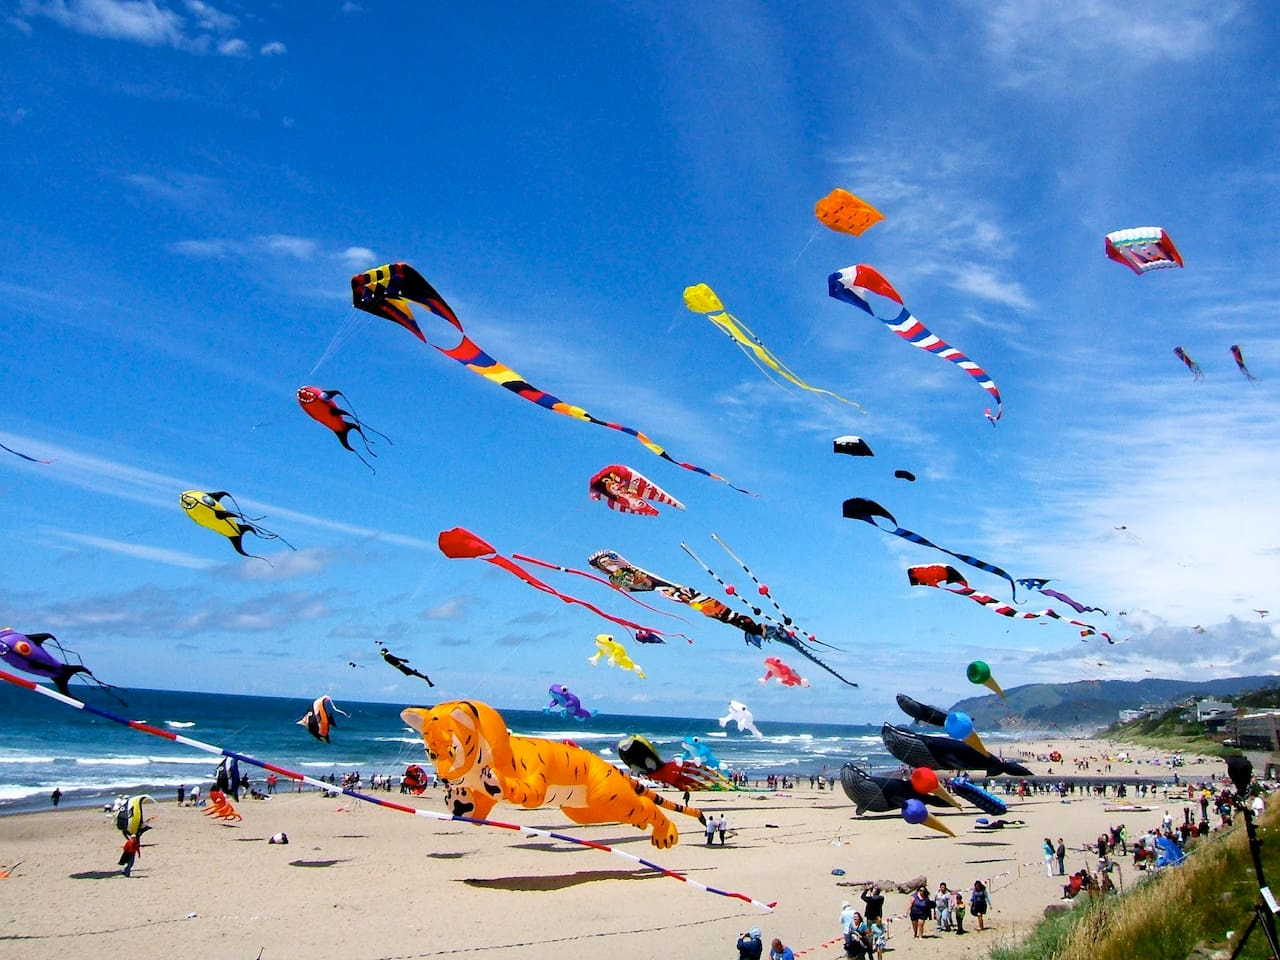 Kite festival weekend. Every summer and fall